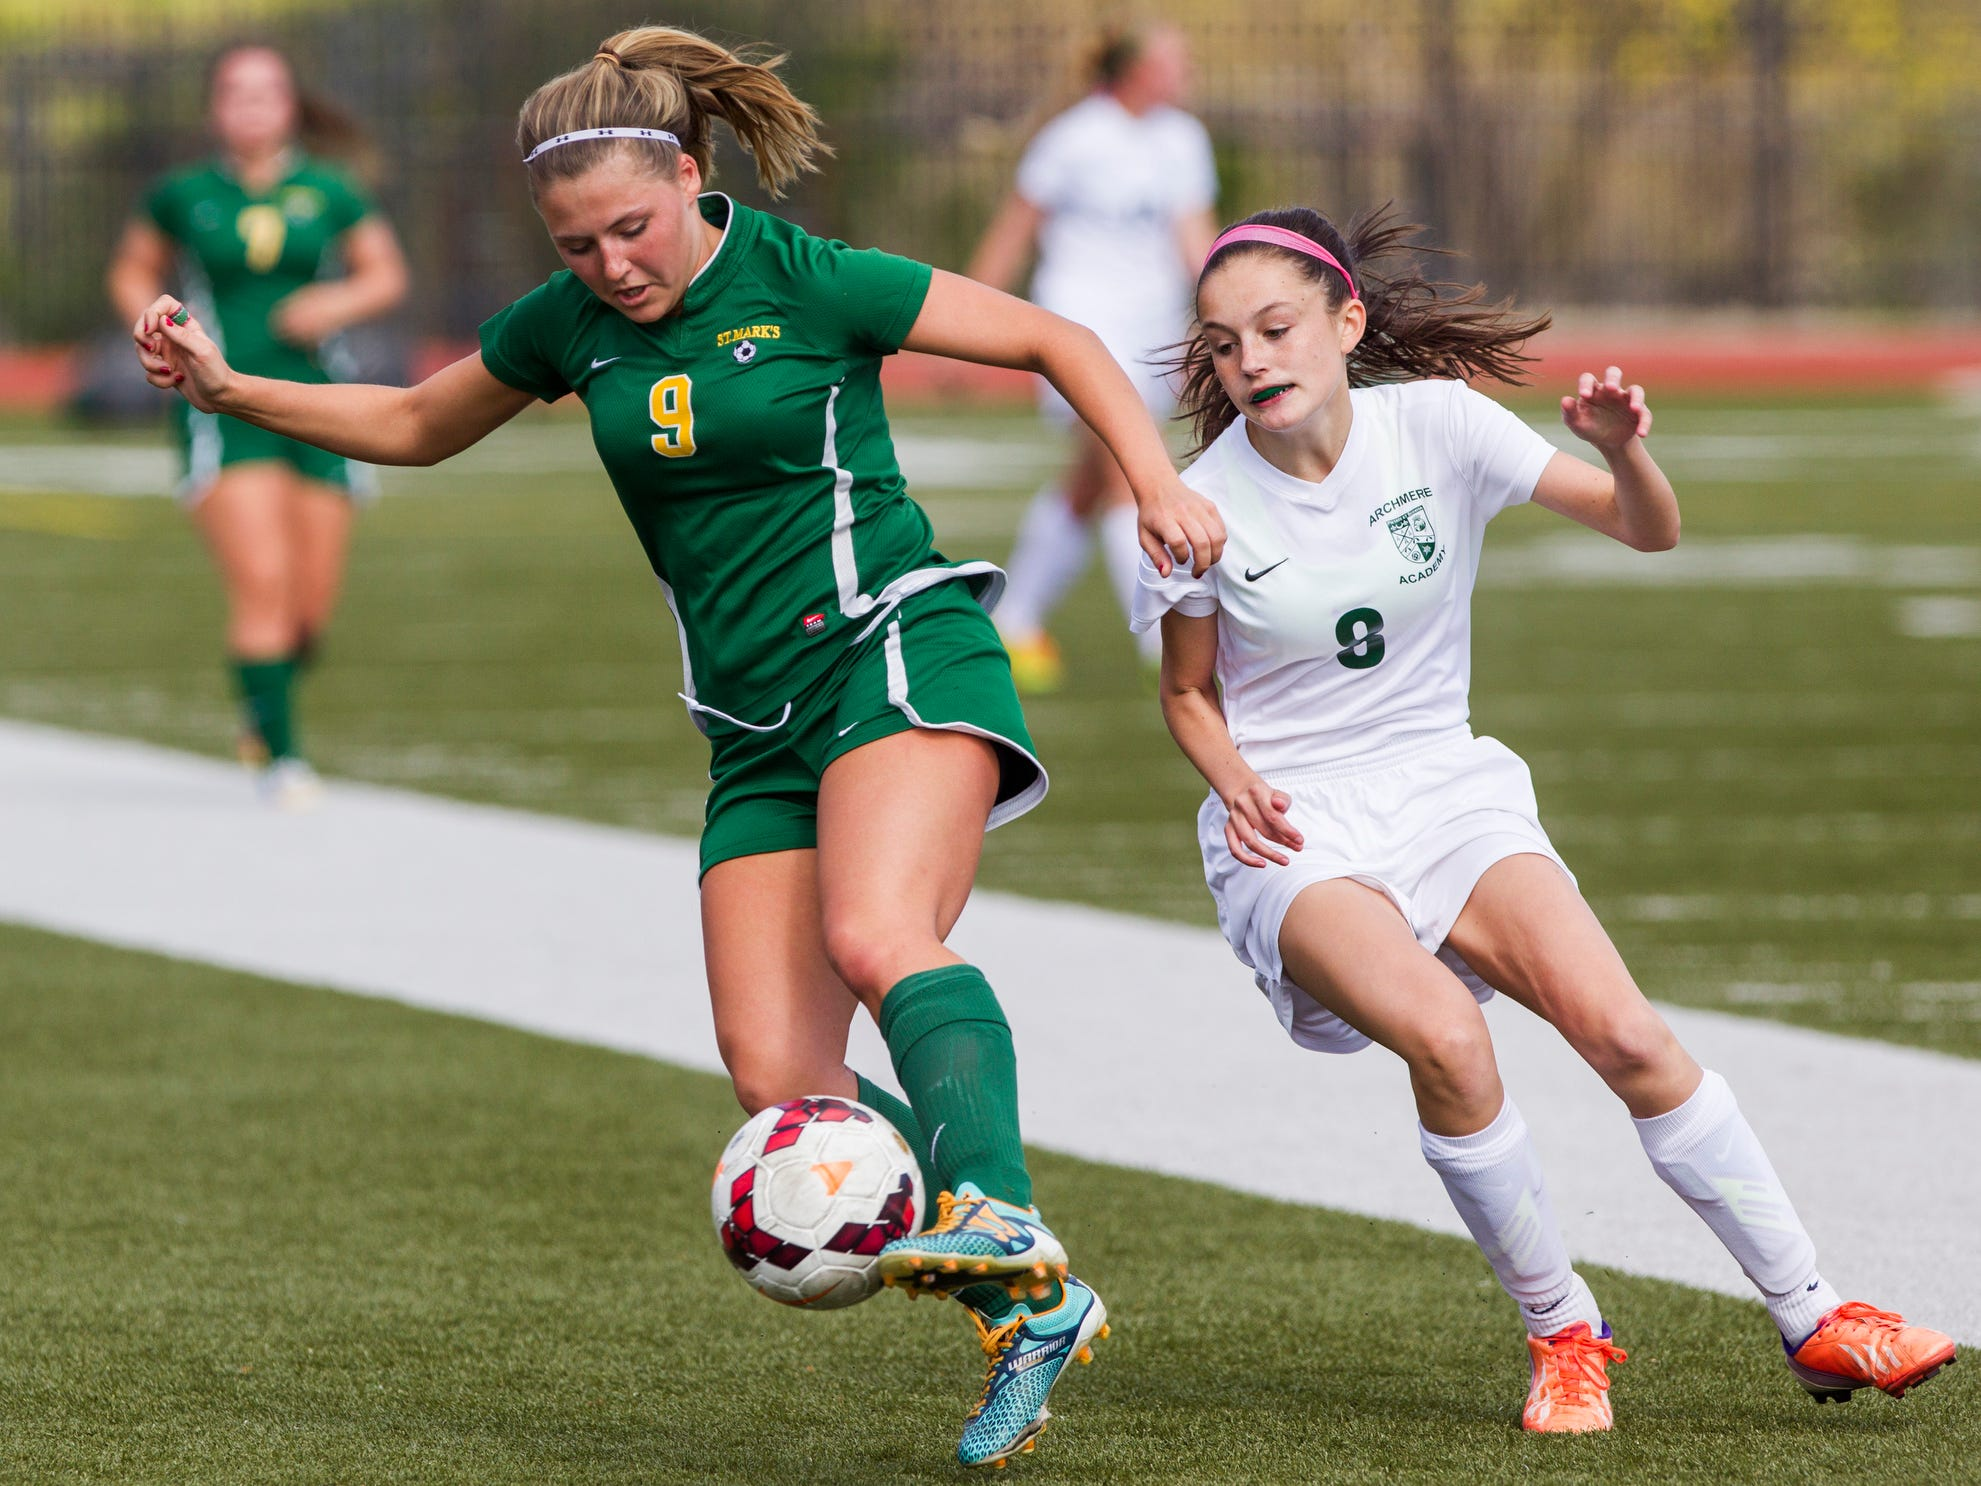 St. Mark's Cassandra Neubauer takes the ball away from Archmere's Dara Dawson Wednesday afternoon in a game won by Archmere 2-1.